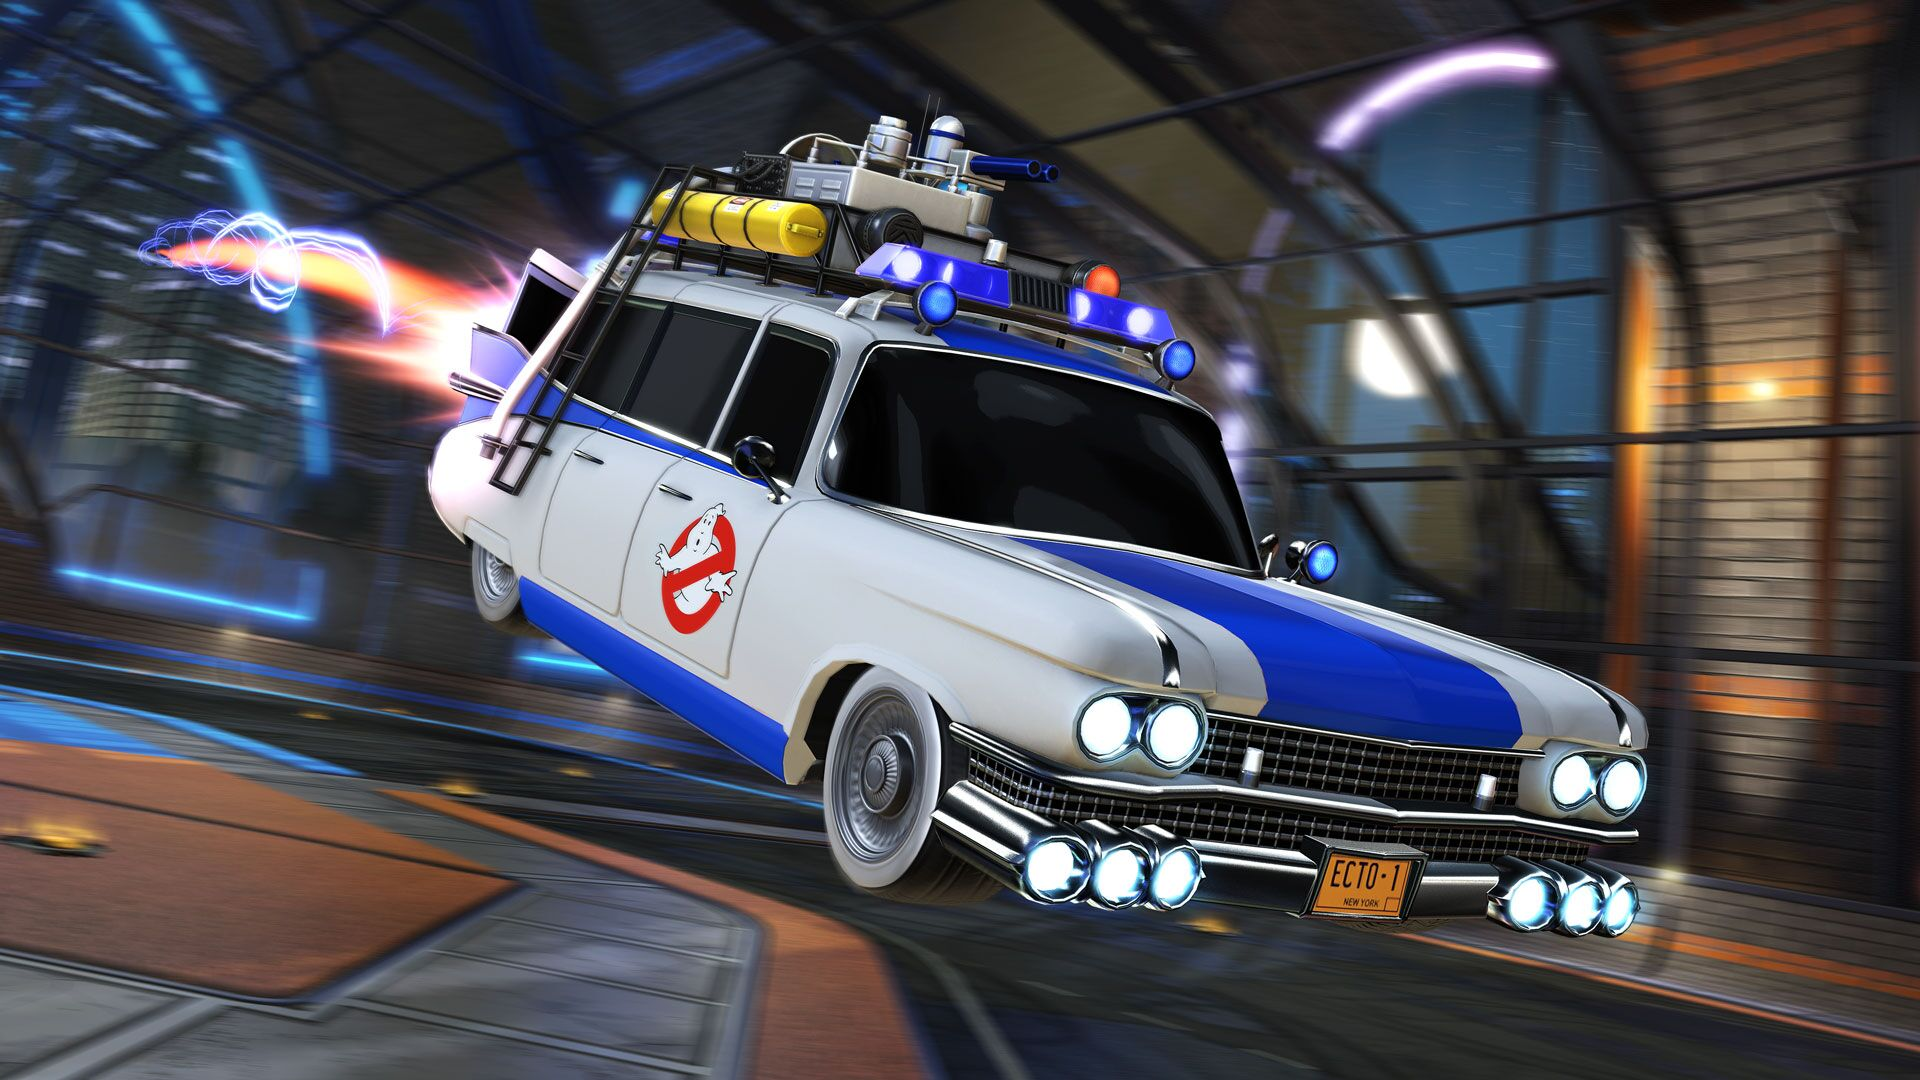 Rocket League returns to the '80s with Ghostbusters and